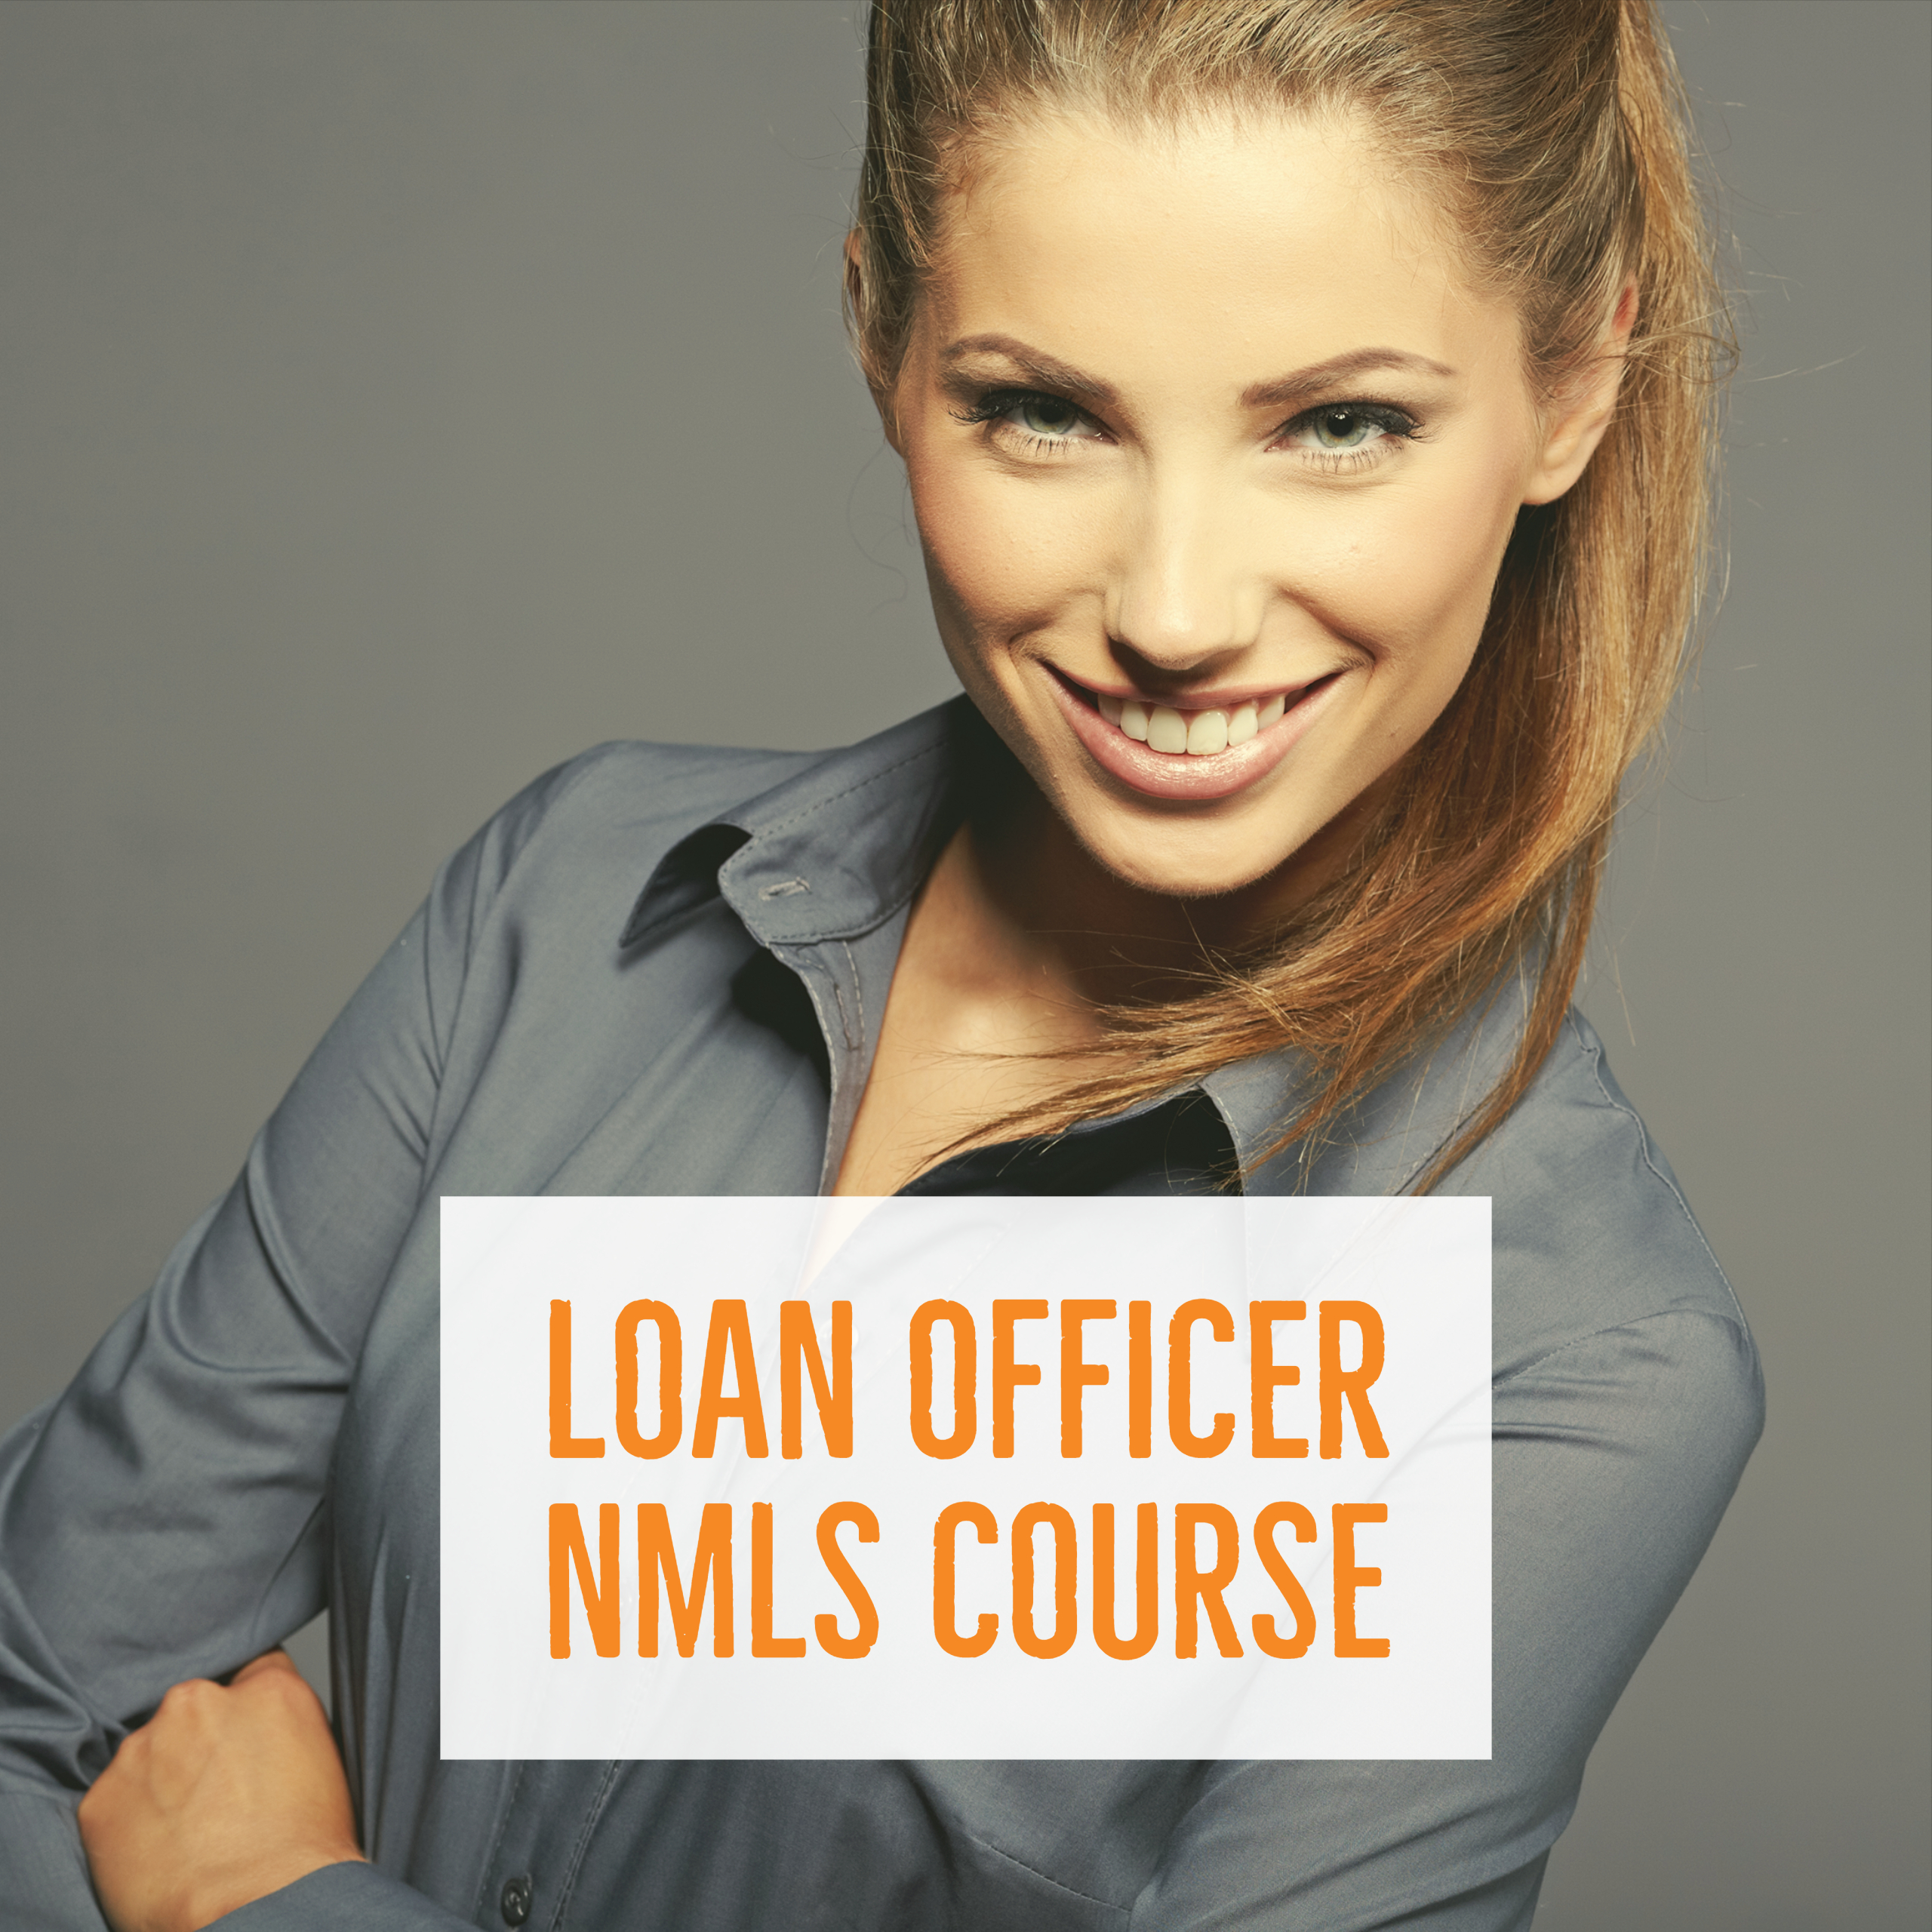 NMLS-Course-Loan-Officer-School-Loan-Officer-Classes-Mortgage-Broker-School-Best-Loan-Officer-Training-CORE